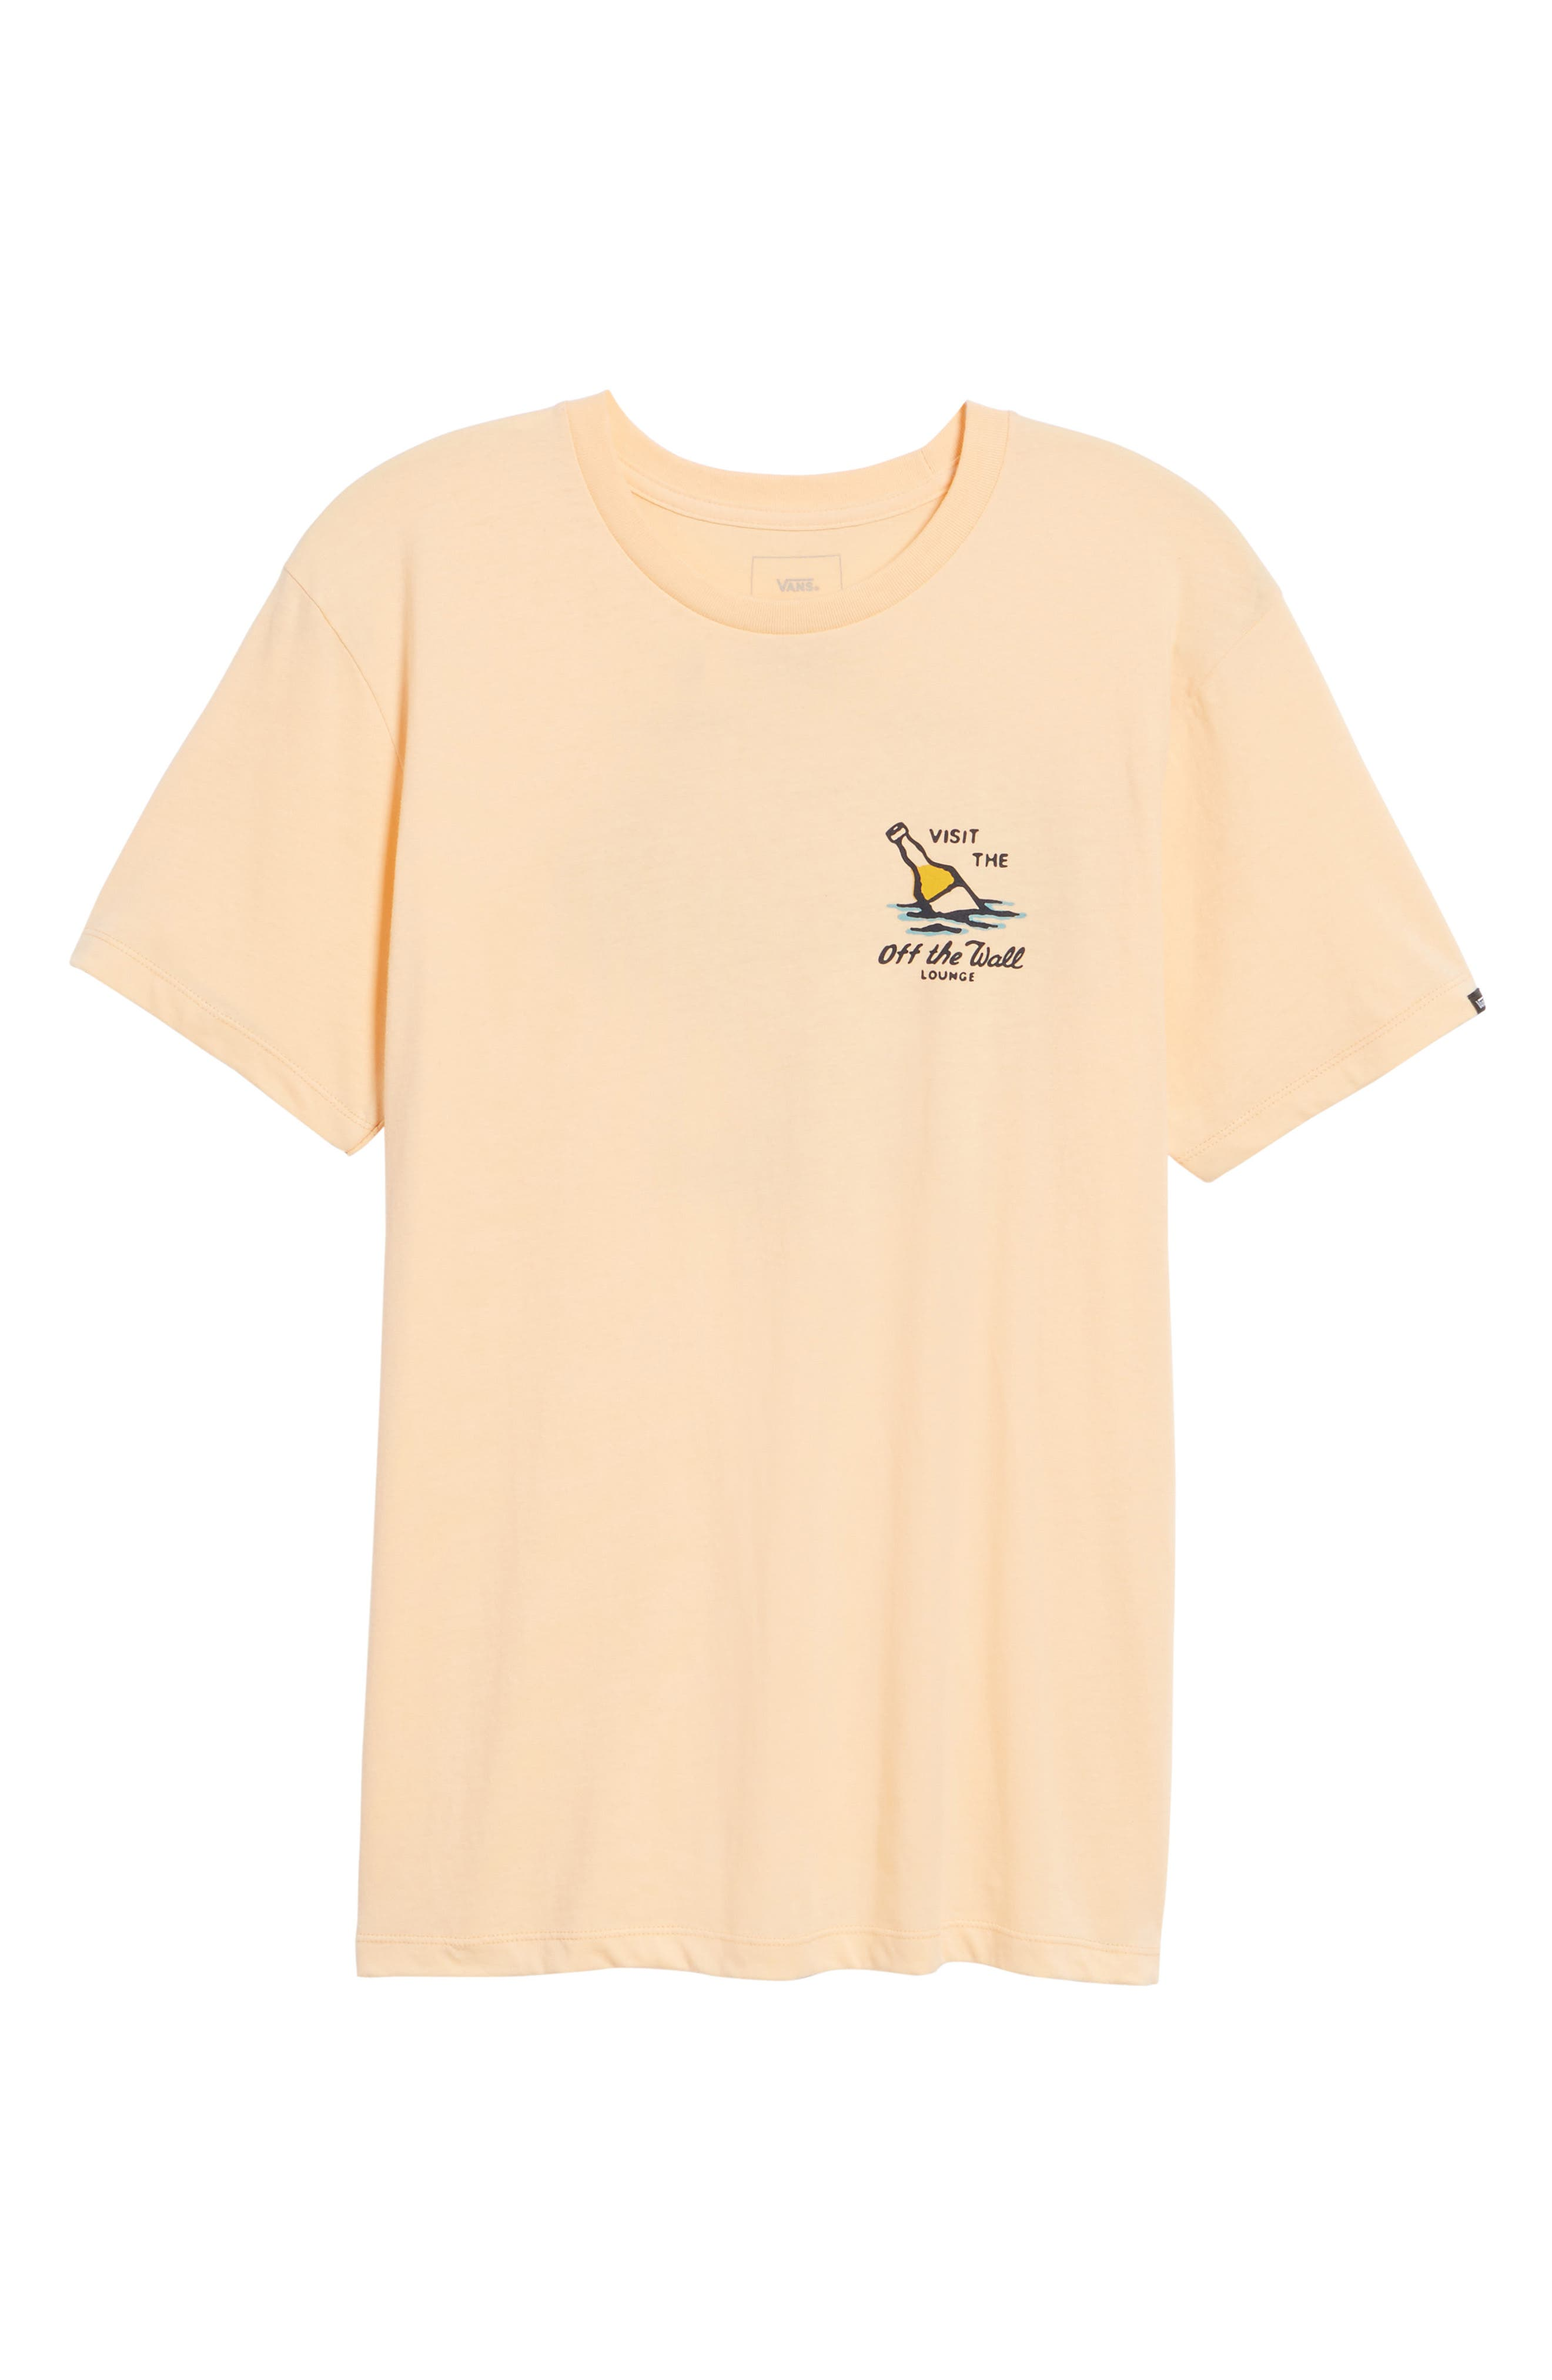 Off the Wall Lounge T-Shirt,                             Alternate thumbnail 6, color,                             Apricot Ice